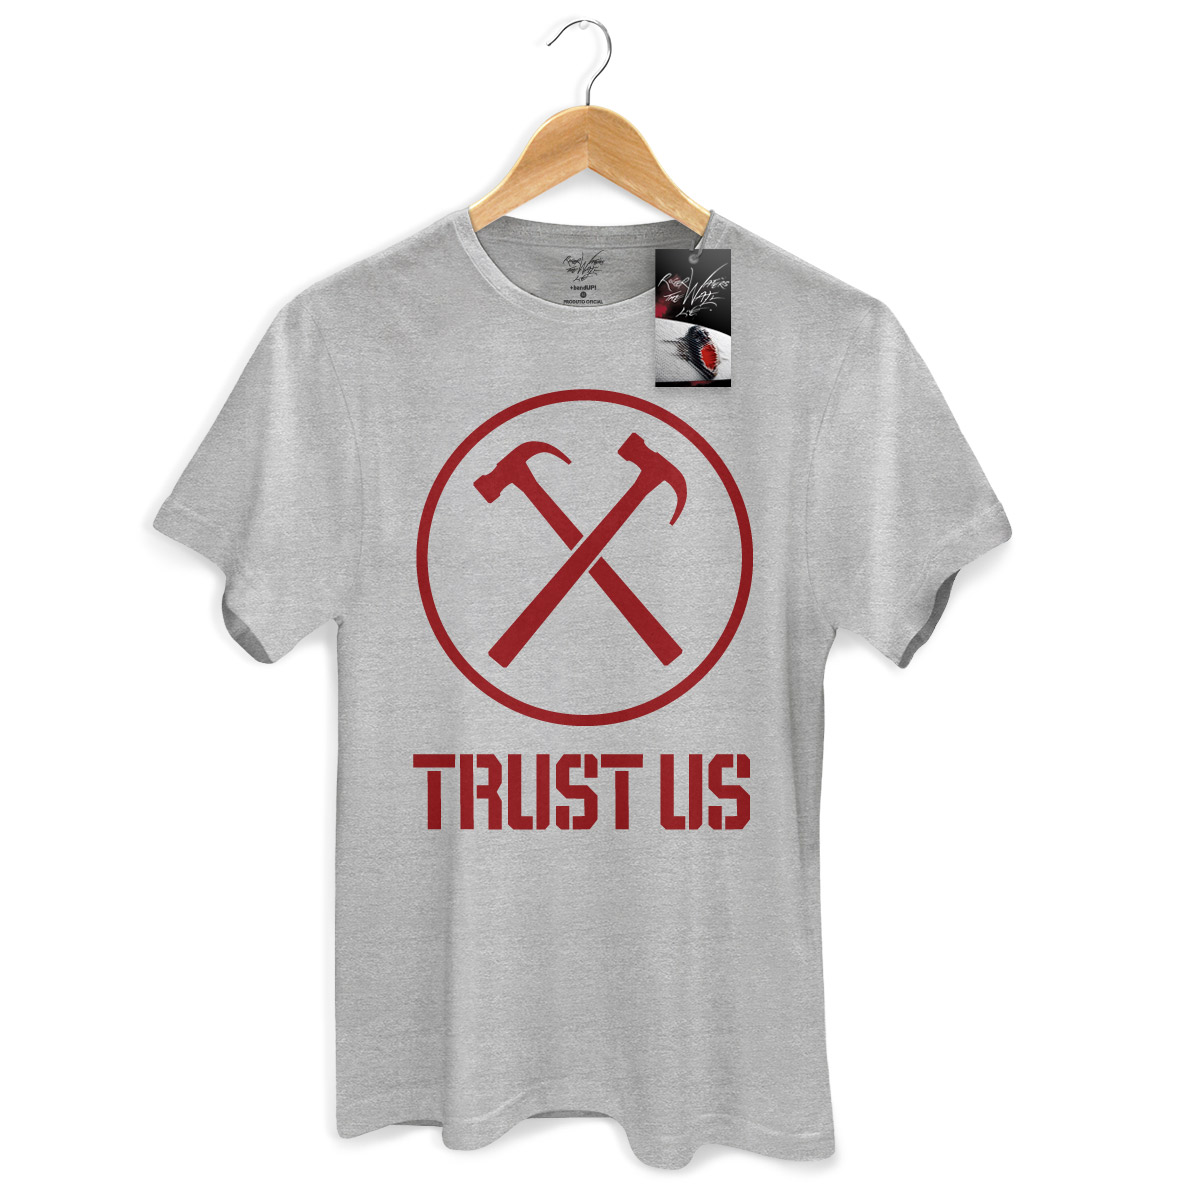 Camiseta Masculina Roger Waters Trust Us Modelo 2